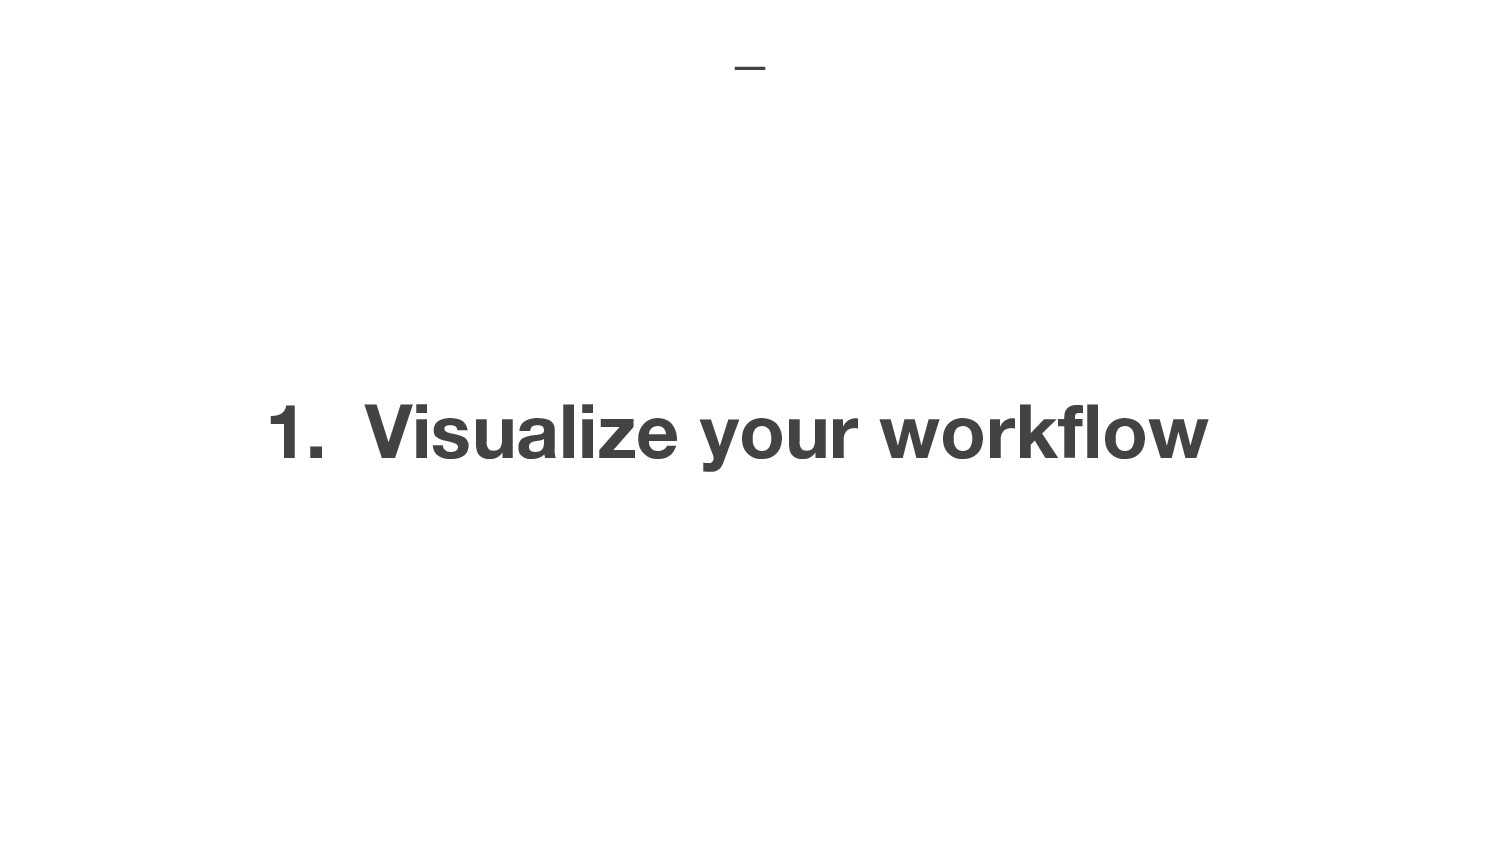 1. Visualize your workflow